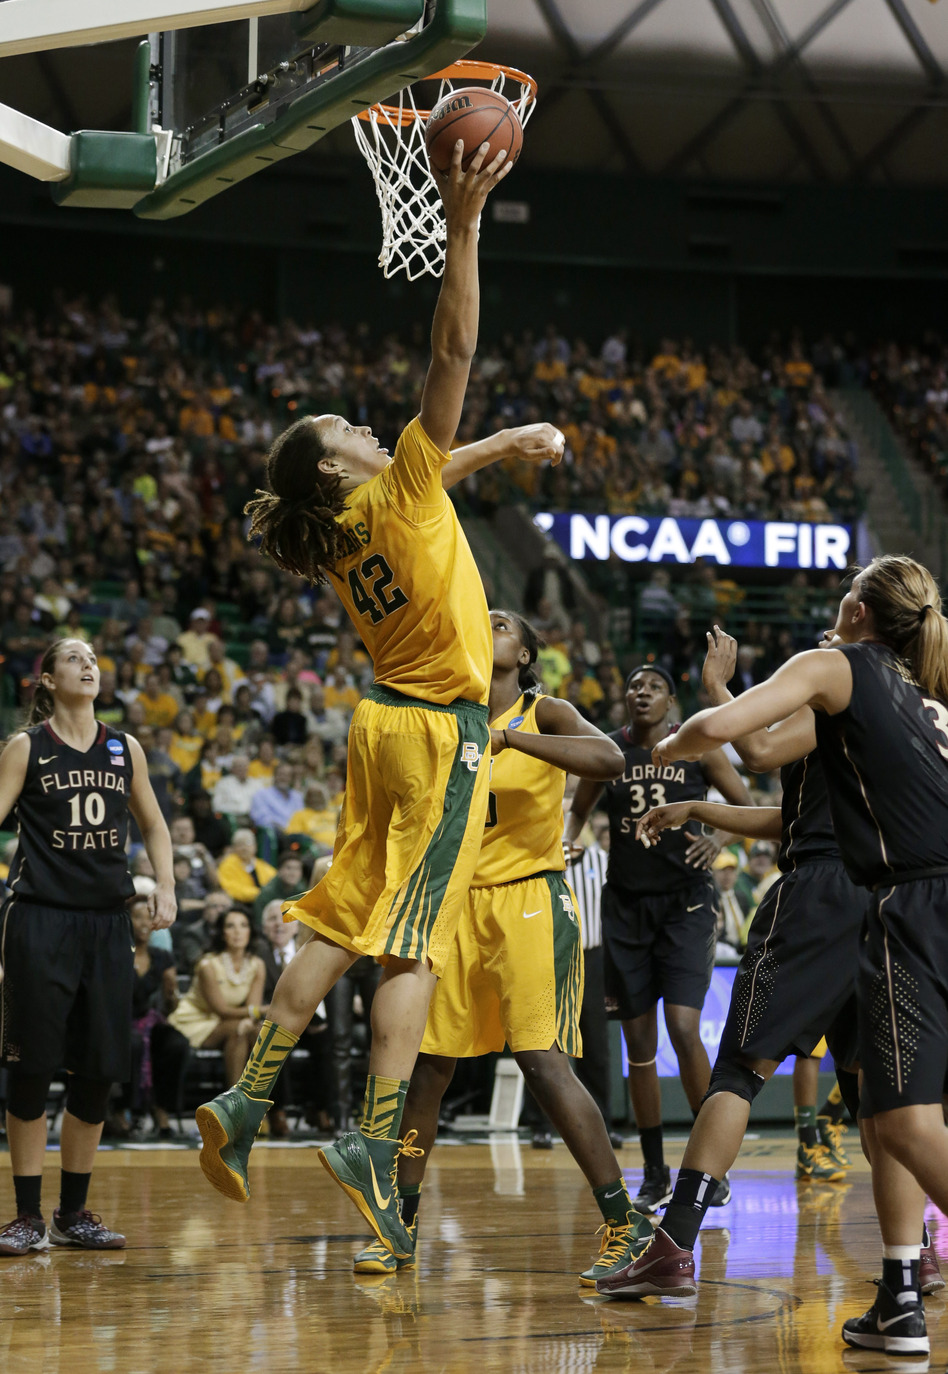 Baylor's Brittney Griner goes up to dunk in a second-round game of the NCAA women's college basketball tournament against Florida State on Tuesday in Waco, Texas. On Sunday, Baylor faces Louisville.